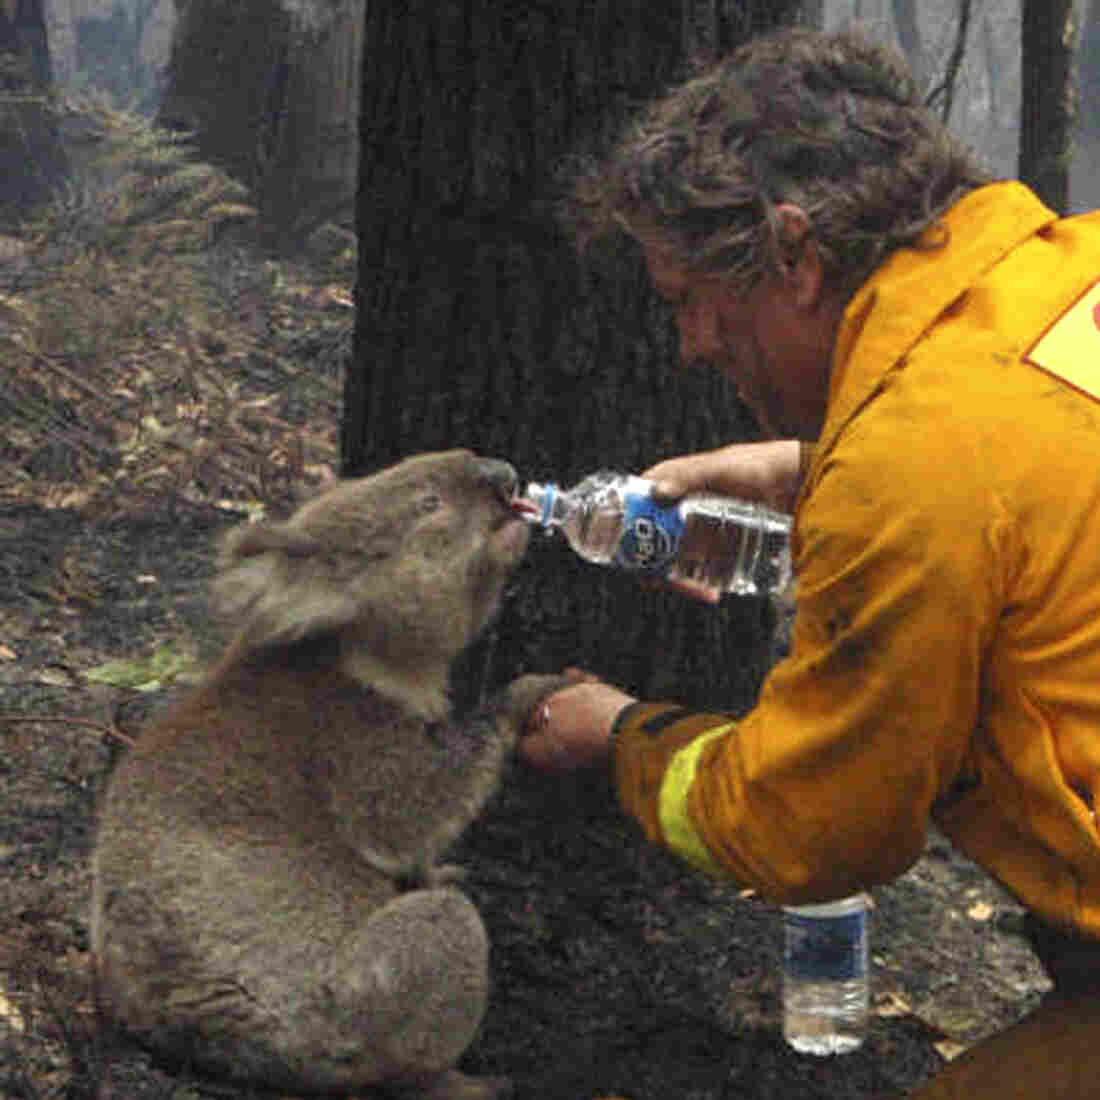 "When wildfires swept across Australia in February 2009, this photo of a firefighter sharing his water with an injured koala captured hearts around the world. The koala later died — not of fire-related injuries, but of chlamydia. Koalas in Australia are suffering from an epidemic of chlamydia, says Dr. Barbara Natterson-Horowitz. ""There's no such thing as safe sex in the wild."""